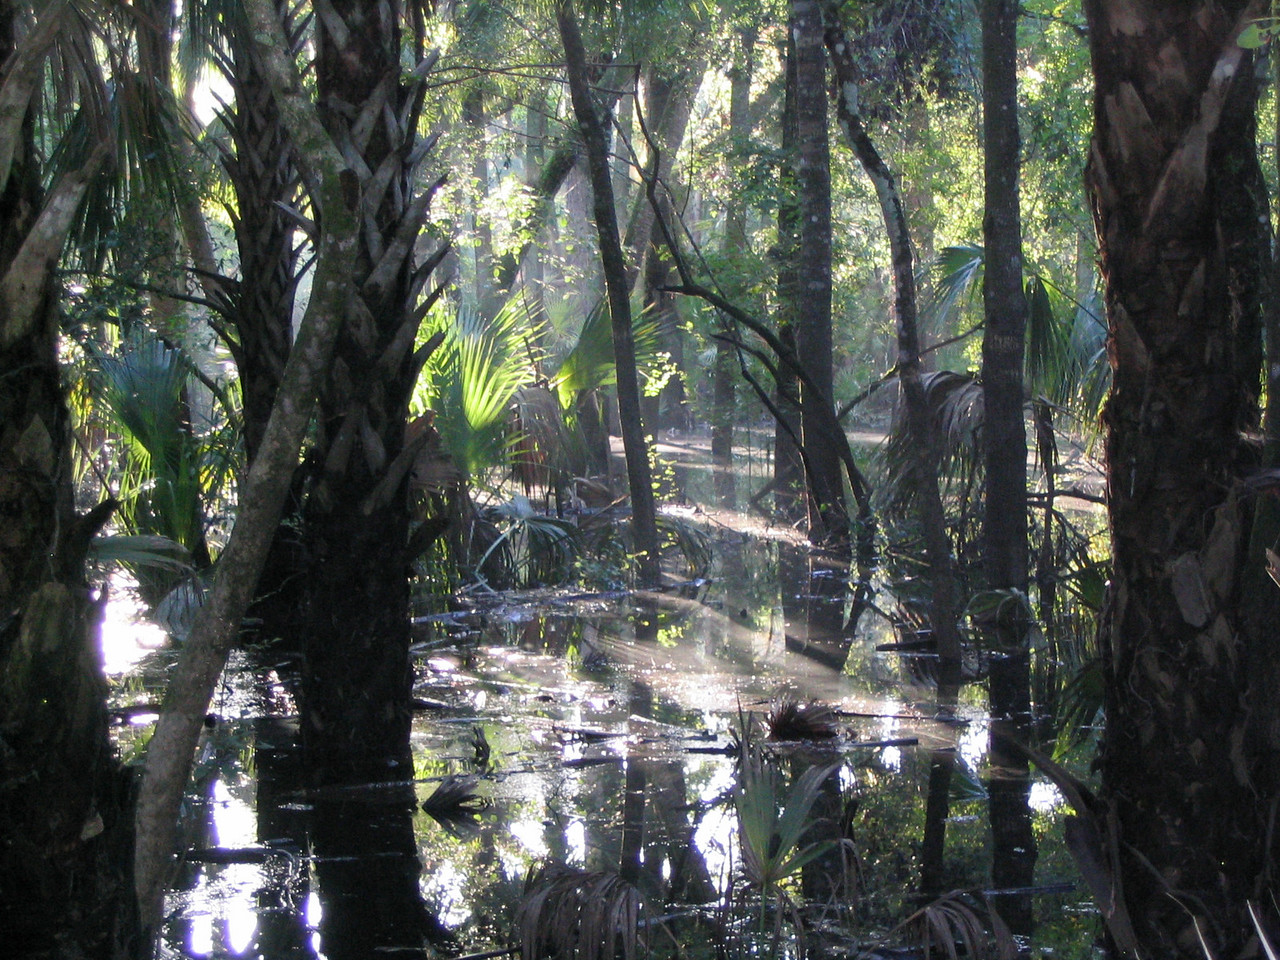 Floodplain forest<br /> PHOTO CREDIT: Brian OHalloran / Florida Trail Association